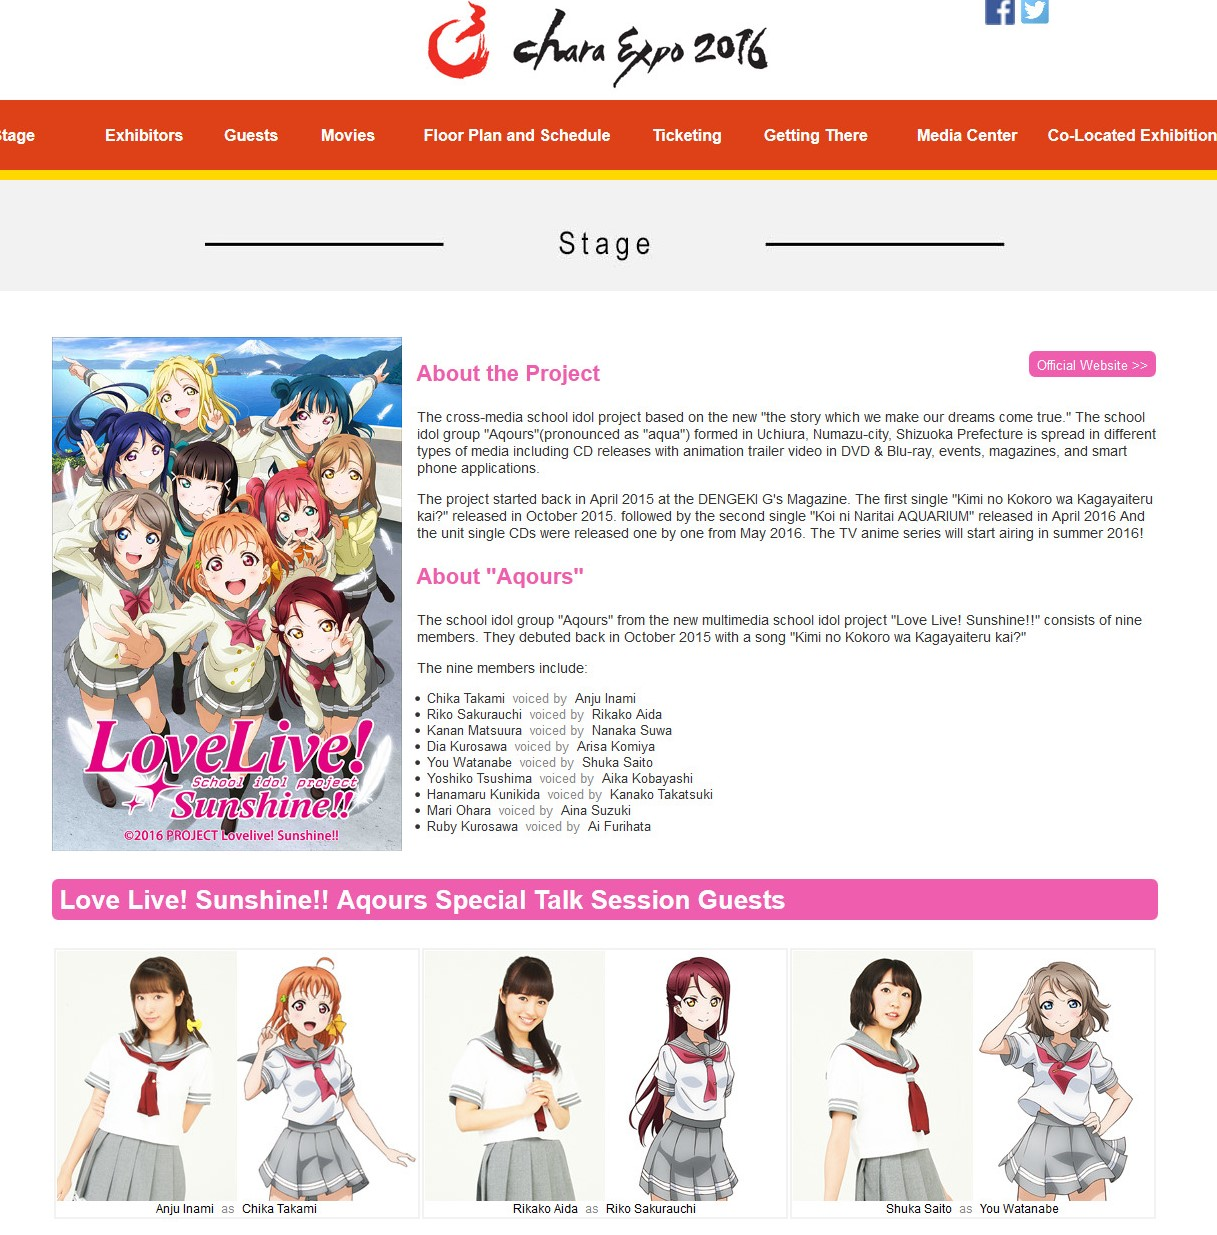 C3 CharaExpo 2016 - Featured Contents - Love Live! School idol project Sunshine!!